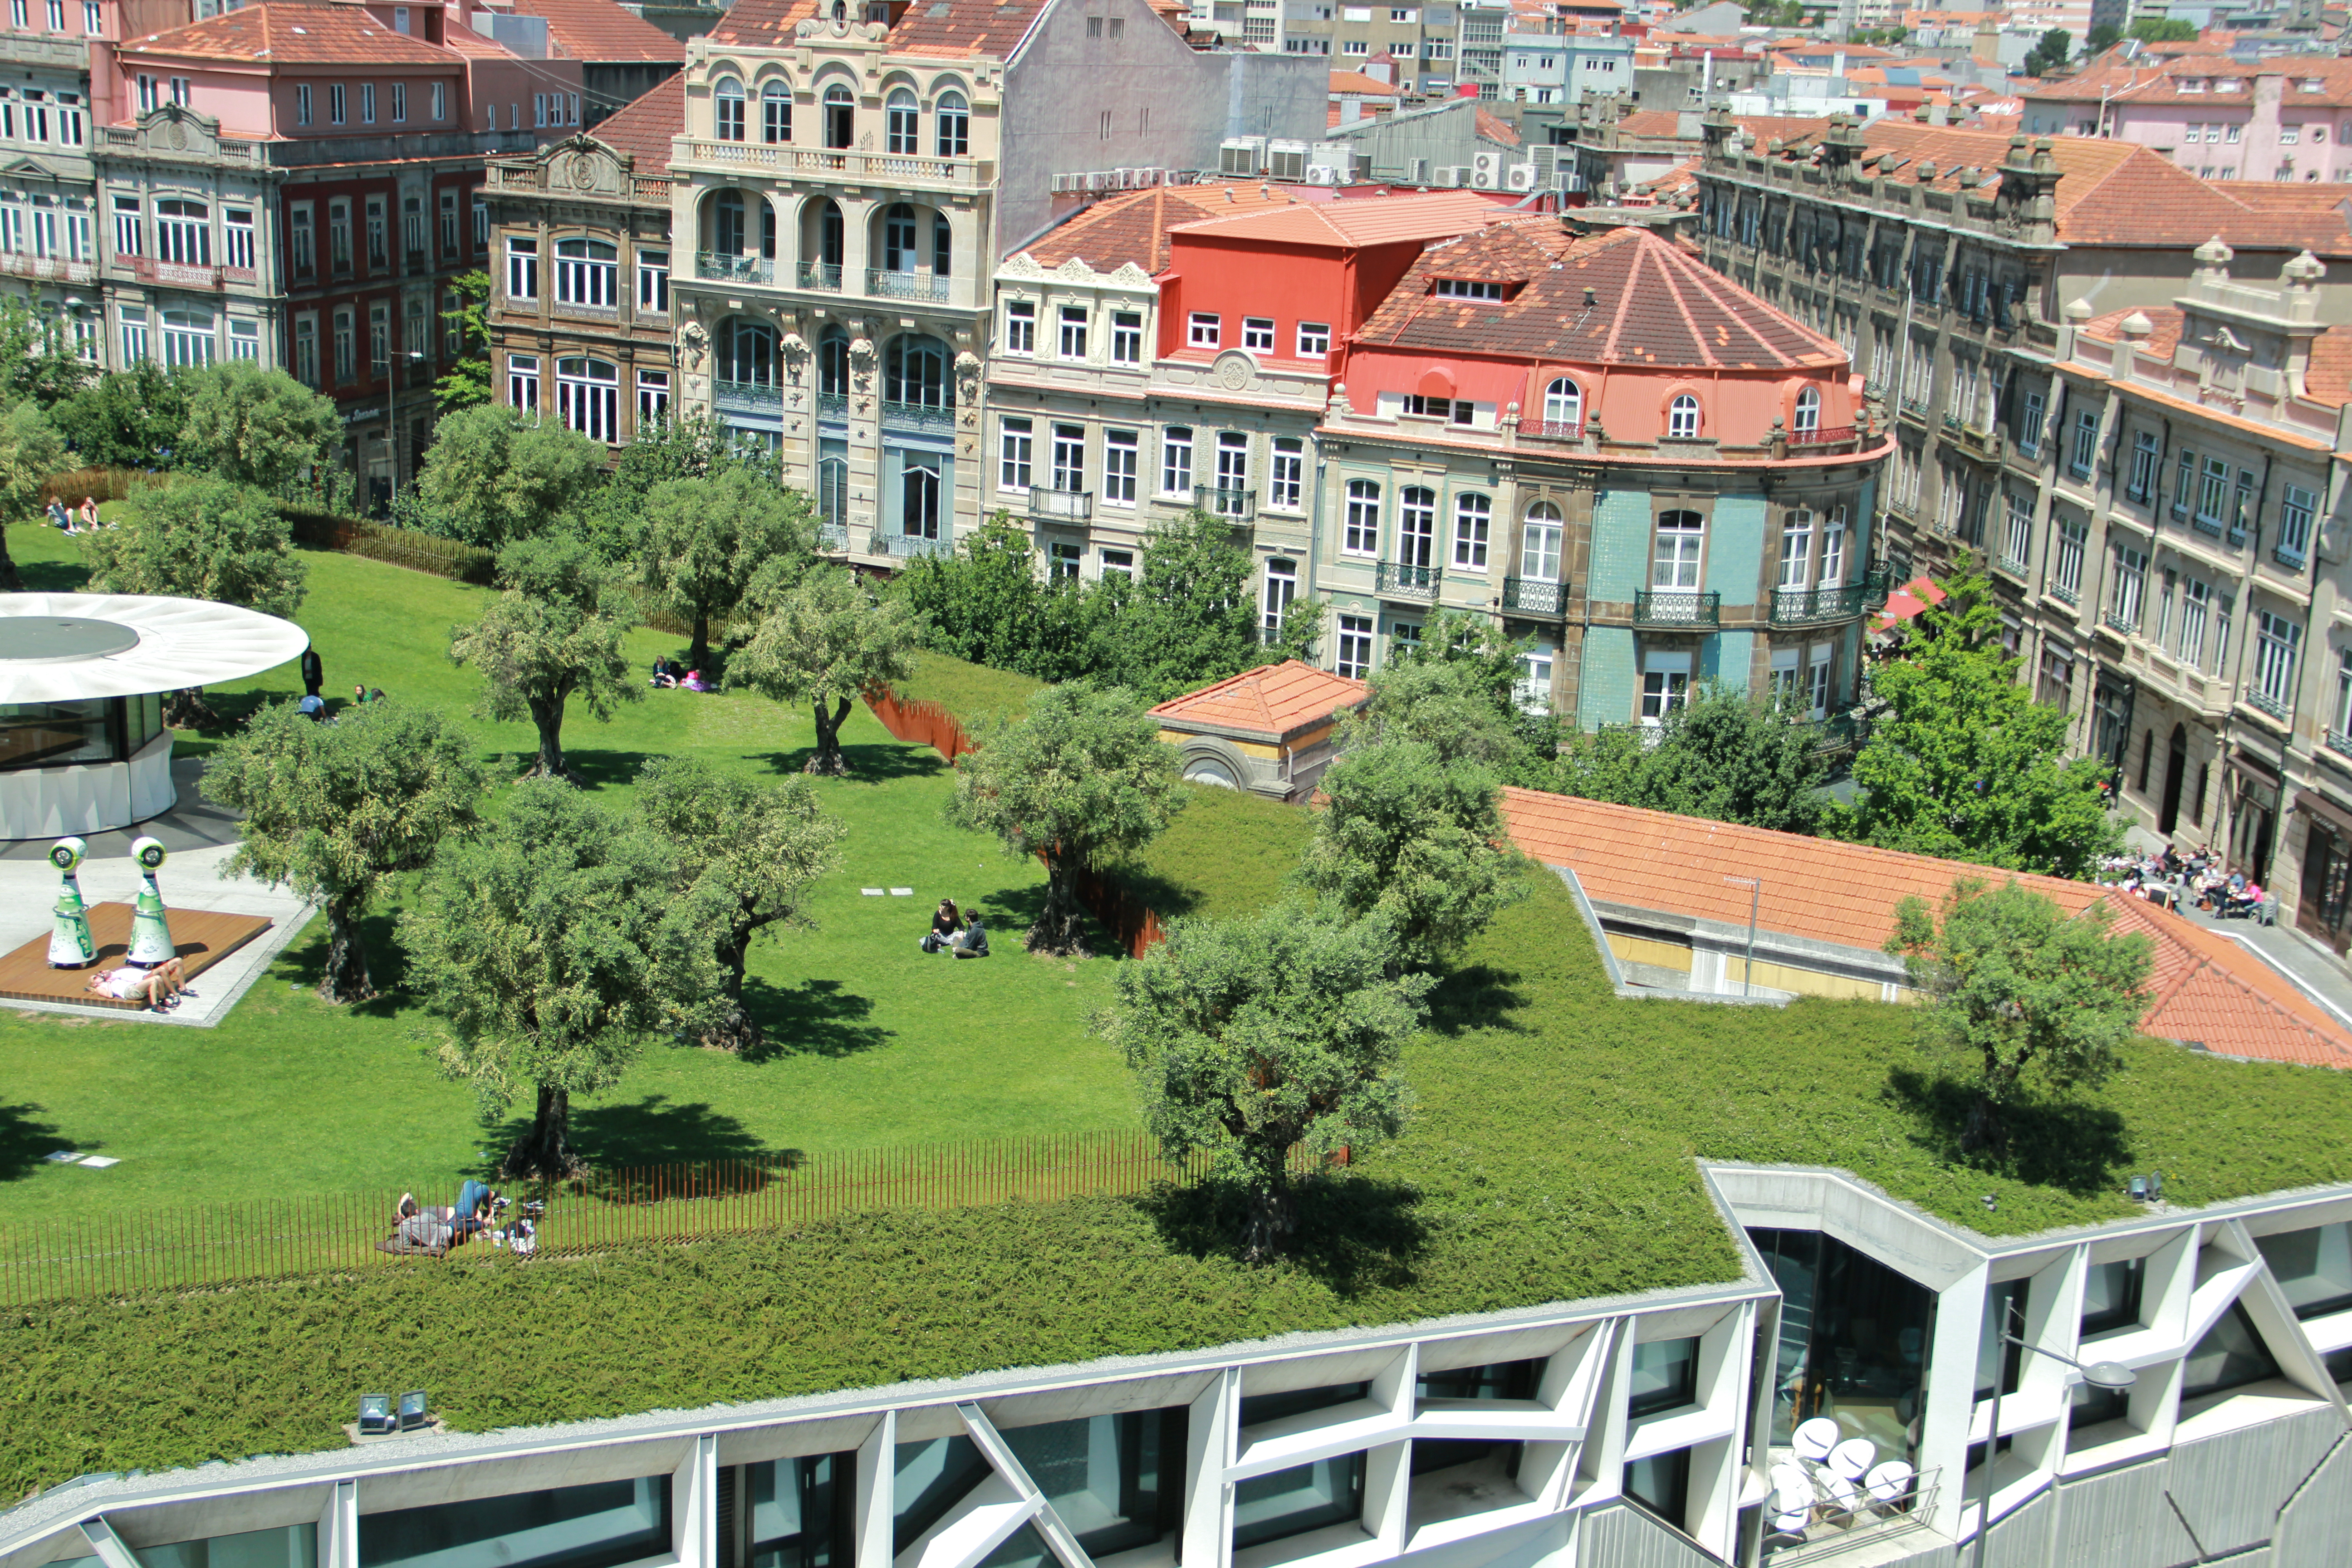 Tuesday S Terrace Oporto Portugal Plinth Et Al